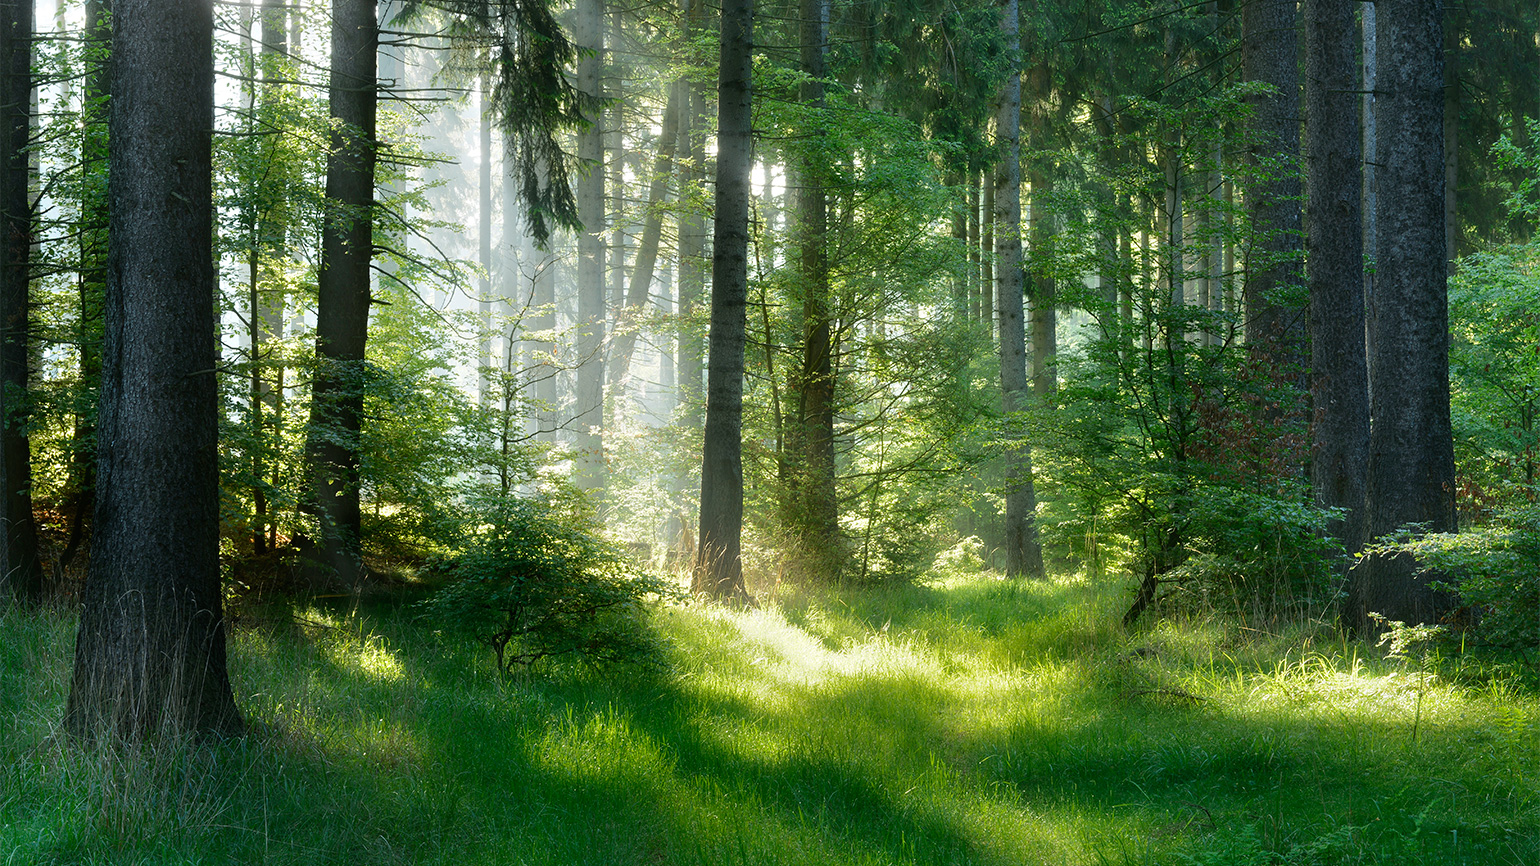 Sunbeams stream into a forest glade